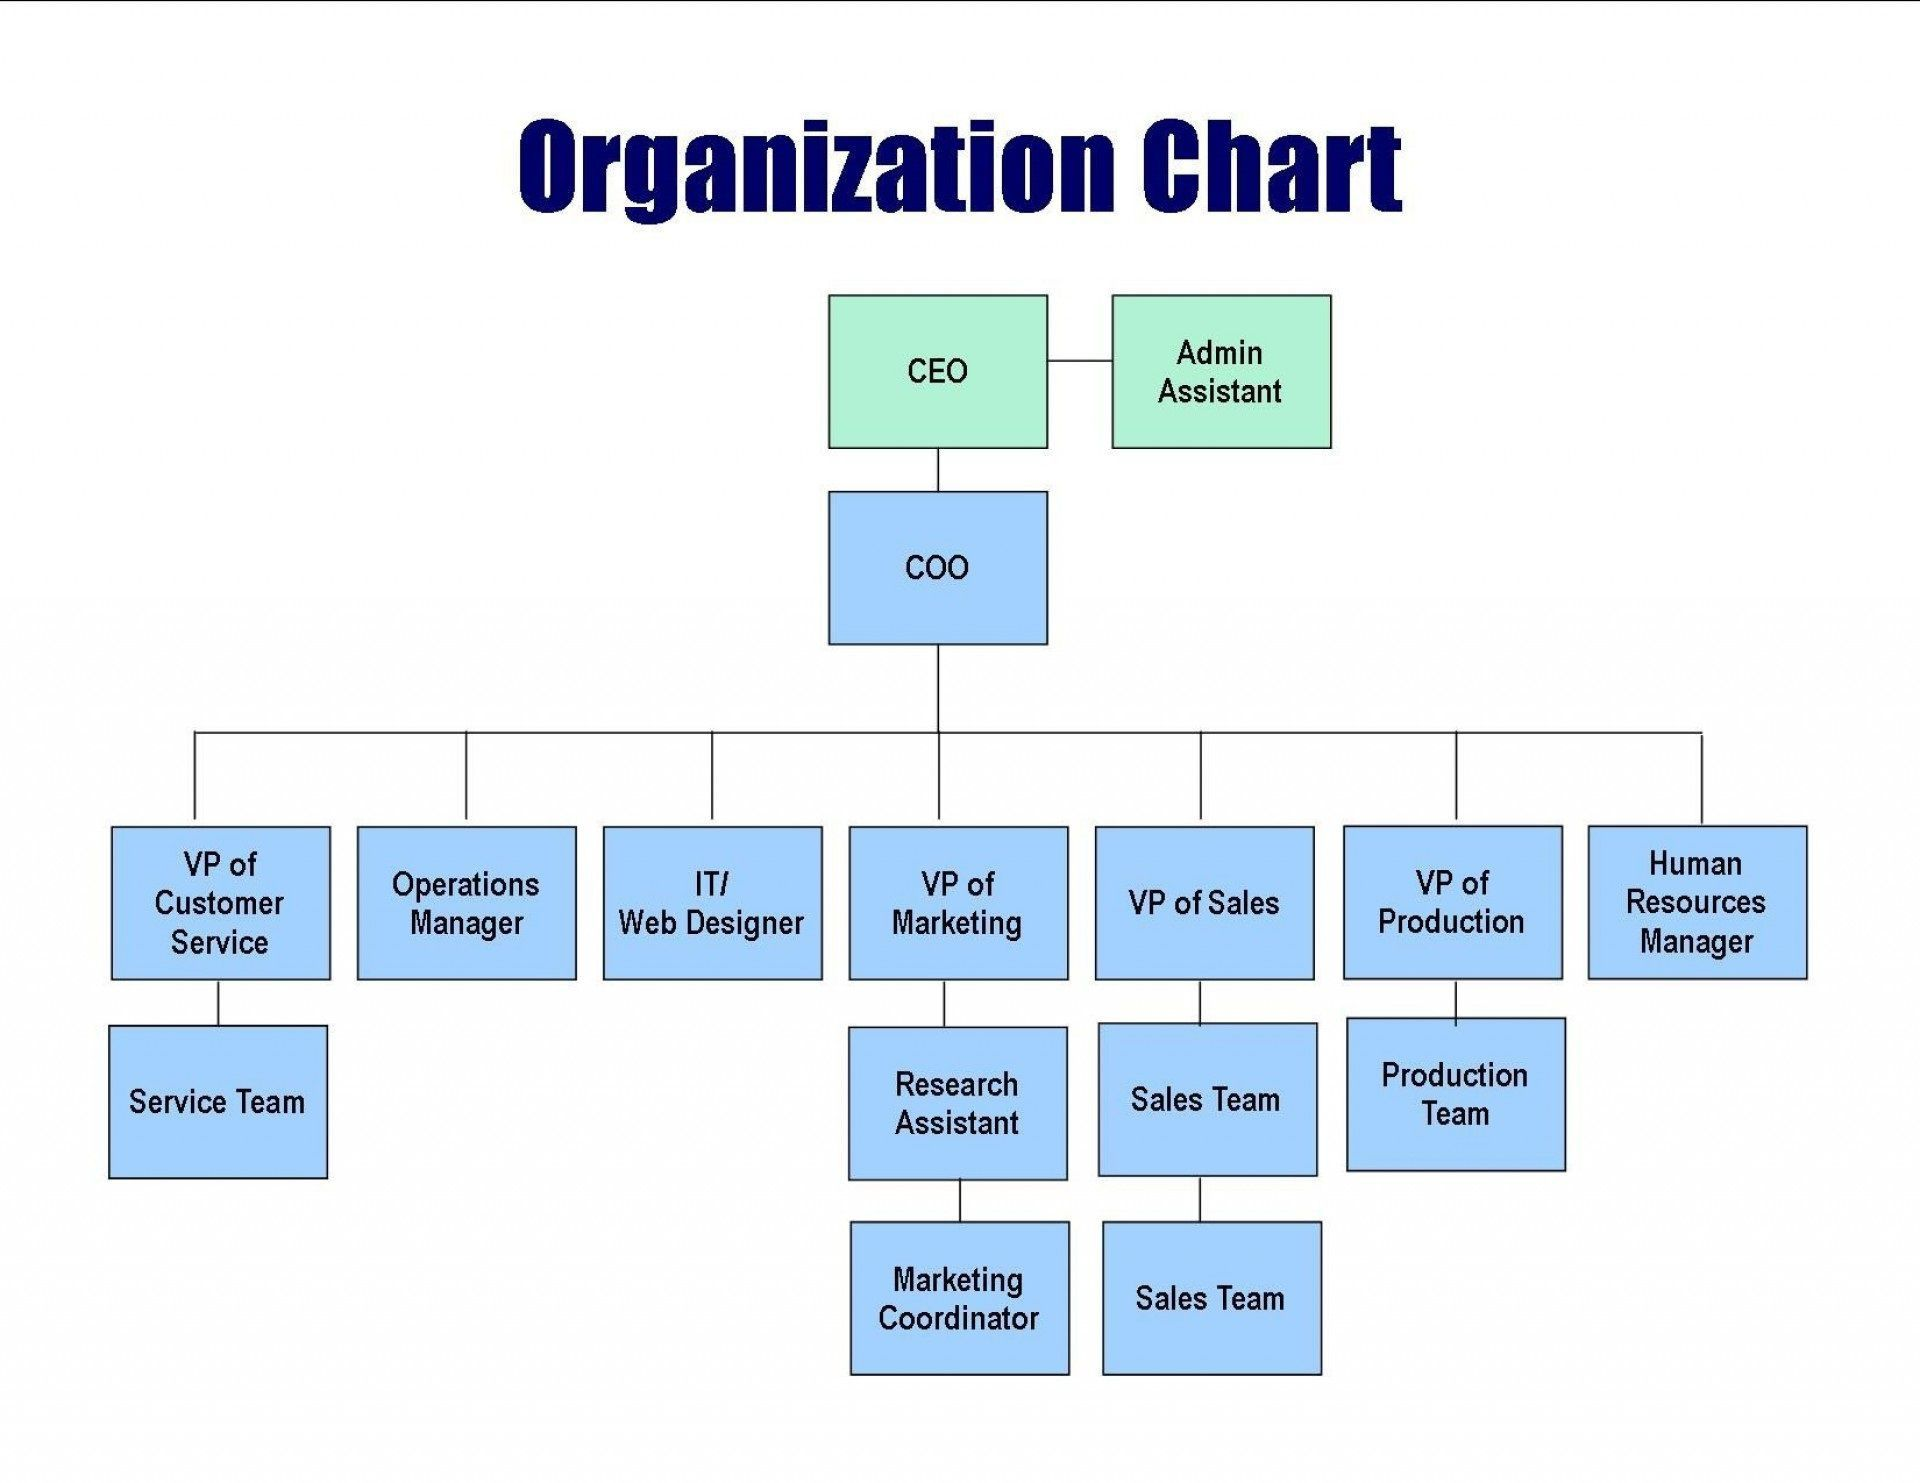 009 Unbelievable Organization Chart Template Word 2013 Photo  Organizational FreeFull